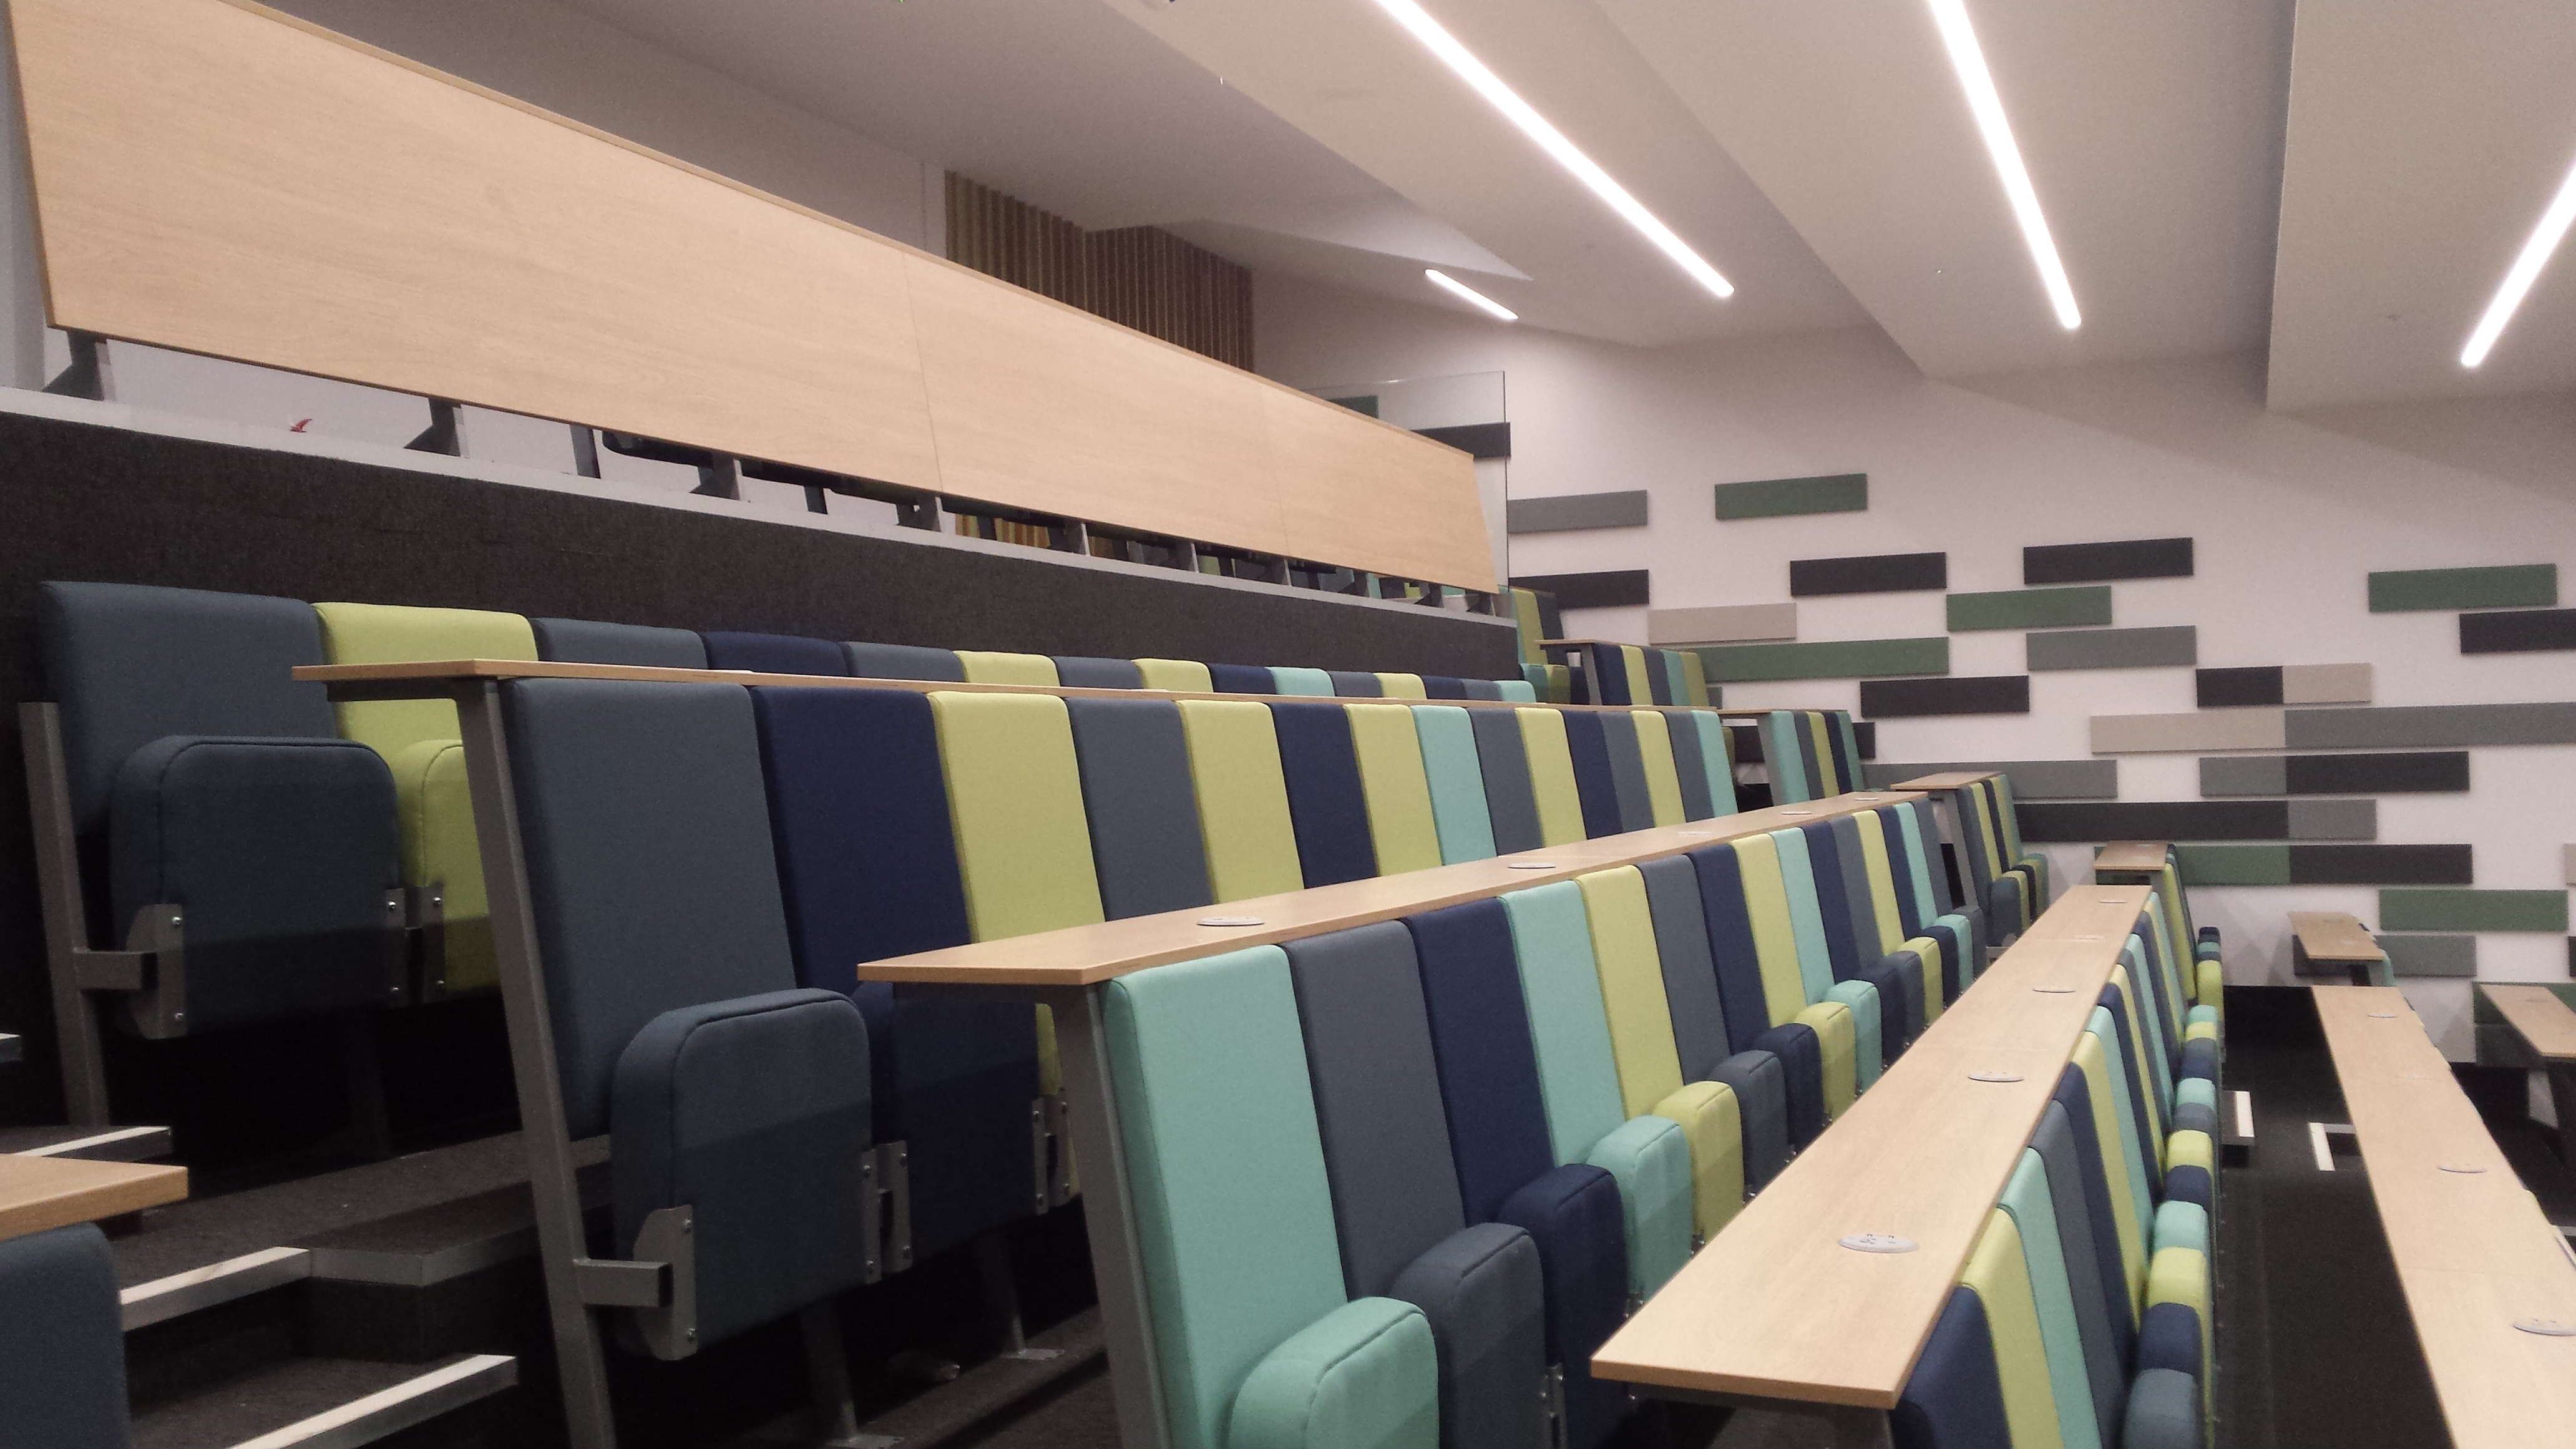 Lecture theatre at Warwick university